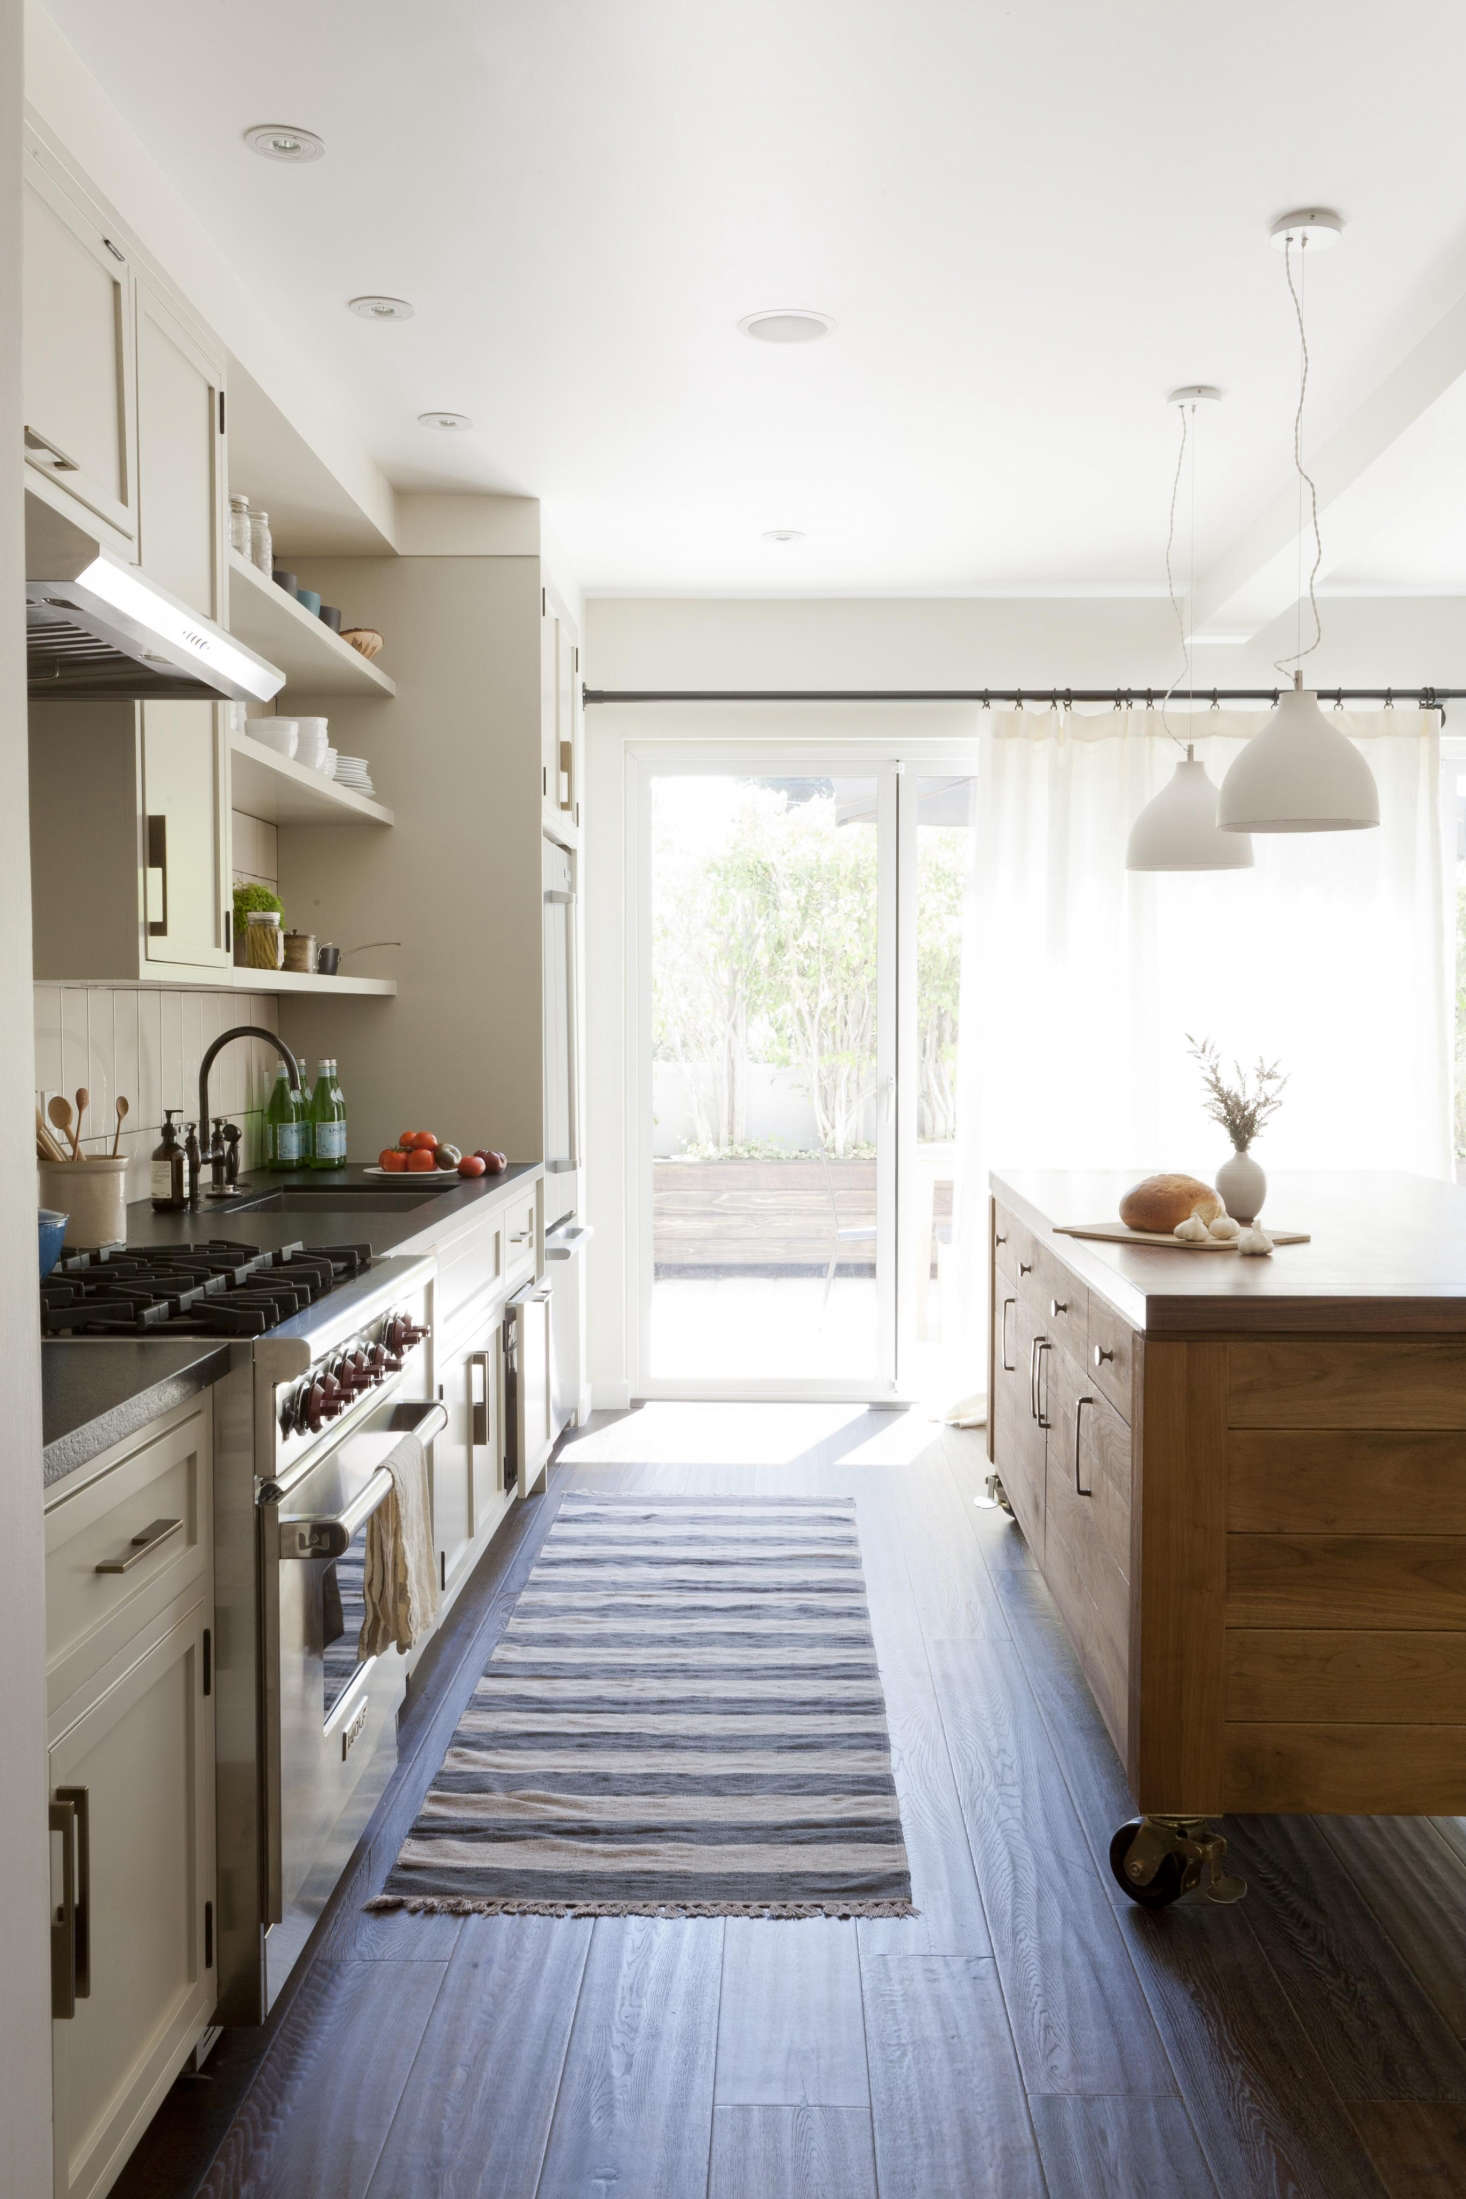 Semi-sheer linen panels add privacy, or pull back to reveal an outdoor courtyard inKitchen of the Week: A Striking Before/After in Venice, California.